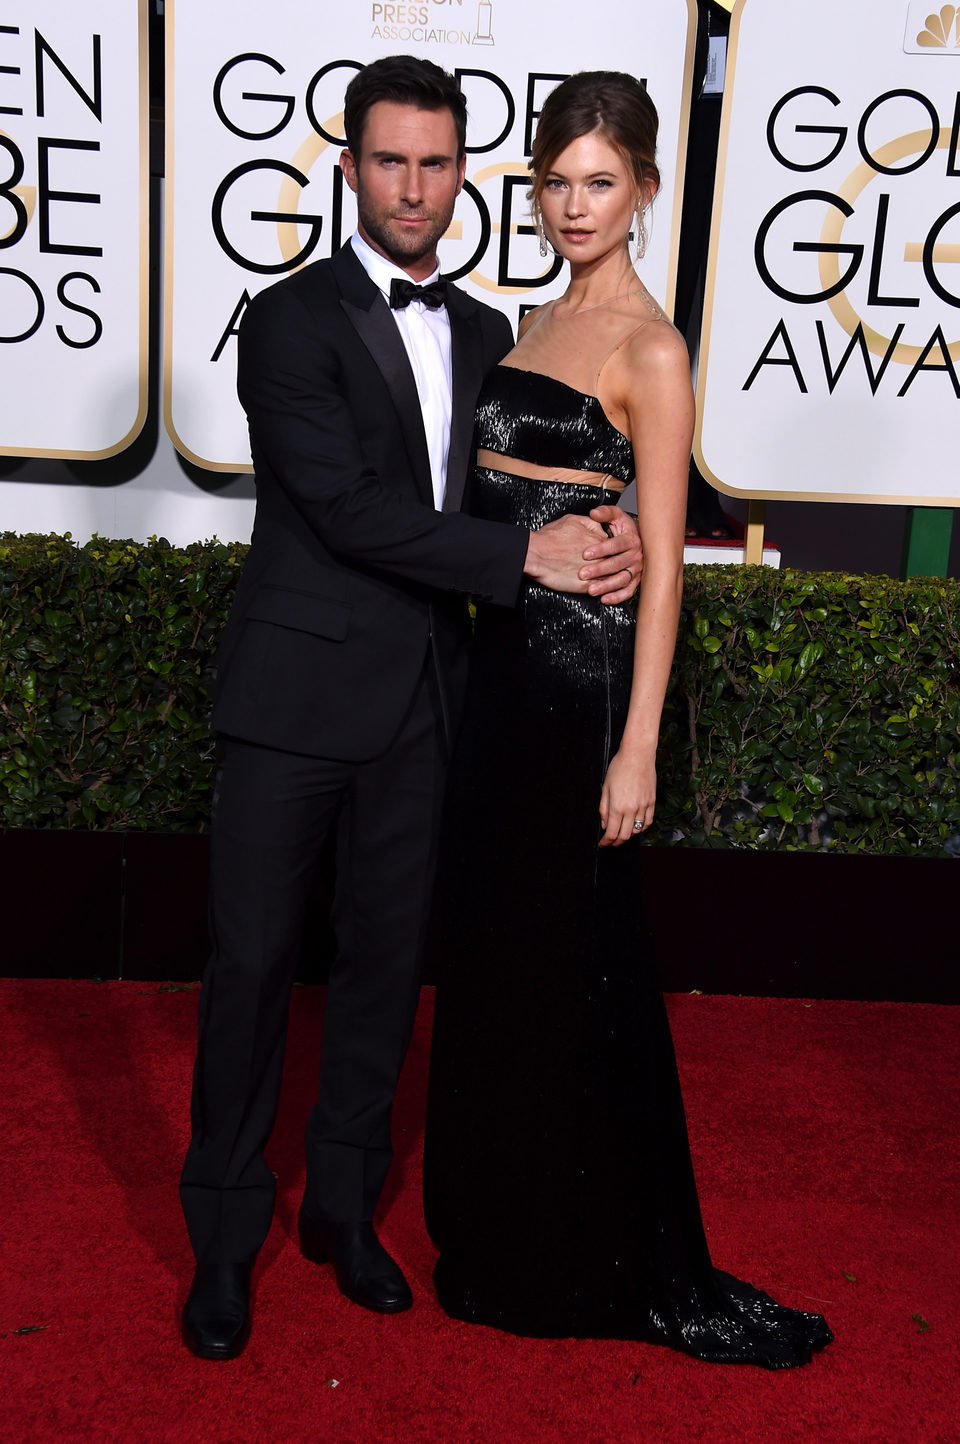 Adam Levine and Behati Prinsloo at the Golden Globes 2015 red carpet